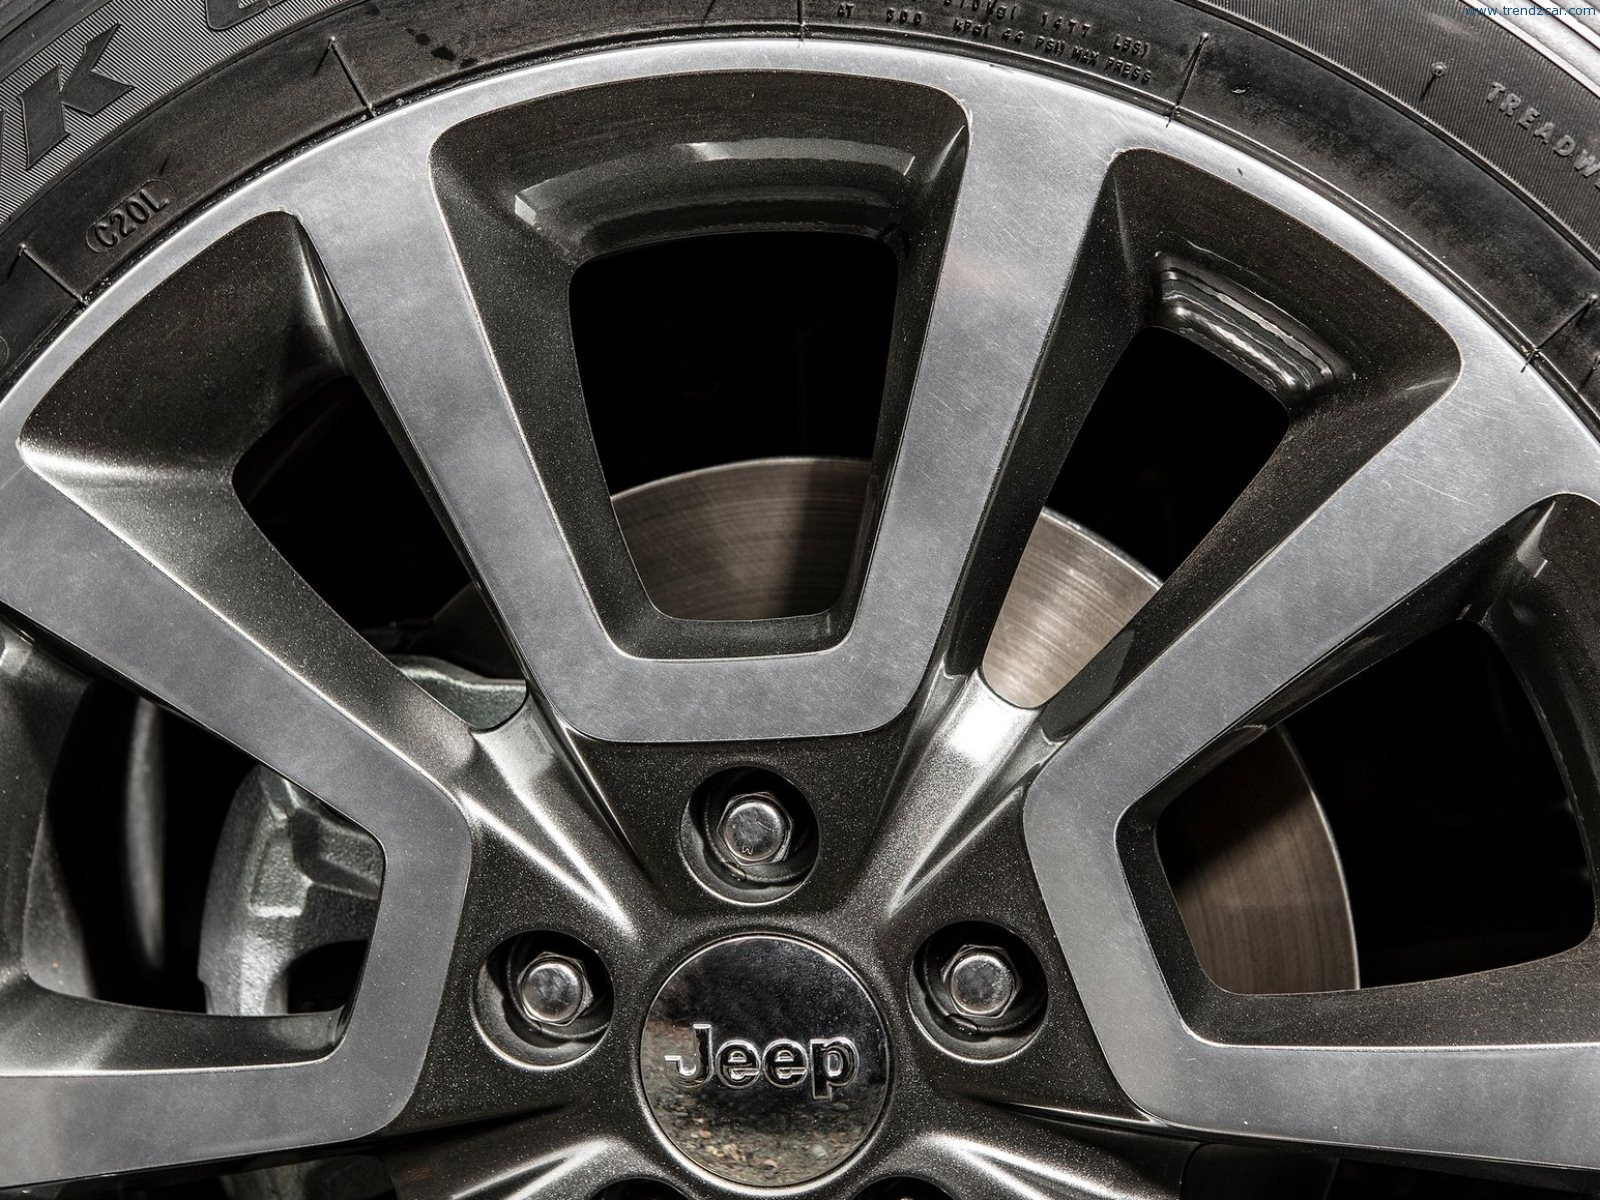 Jeep Compass wheels #2